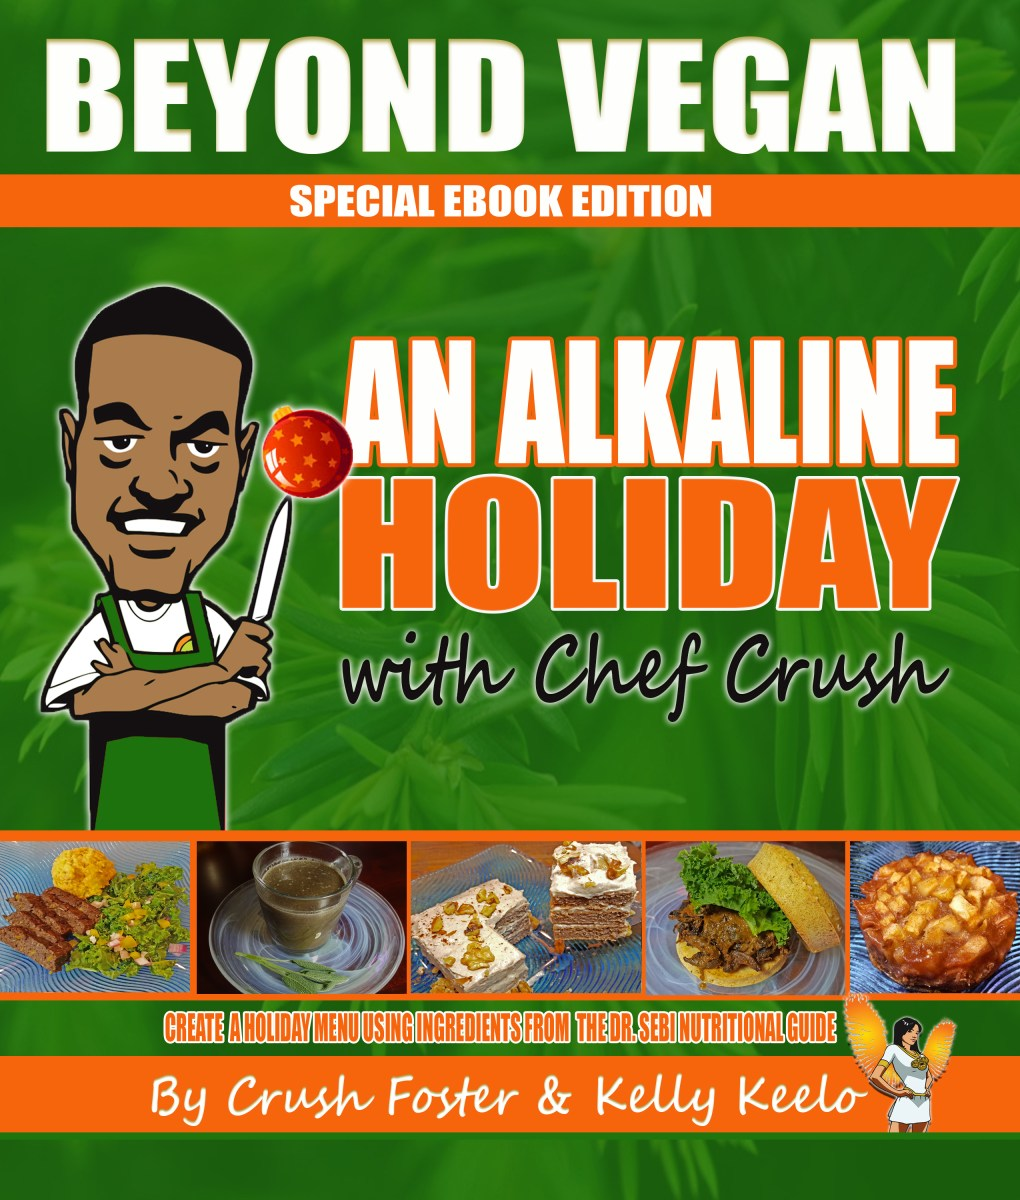 AN ALKALINE HOLIDAY